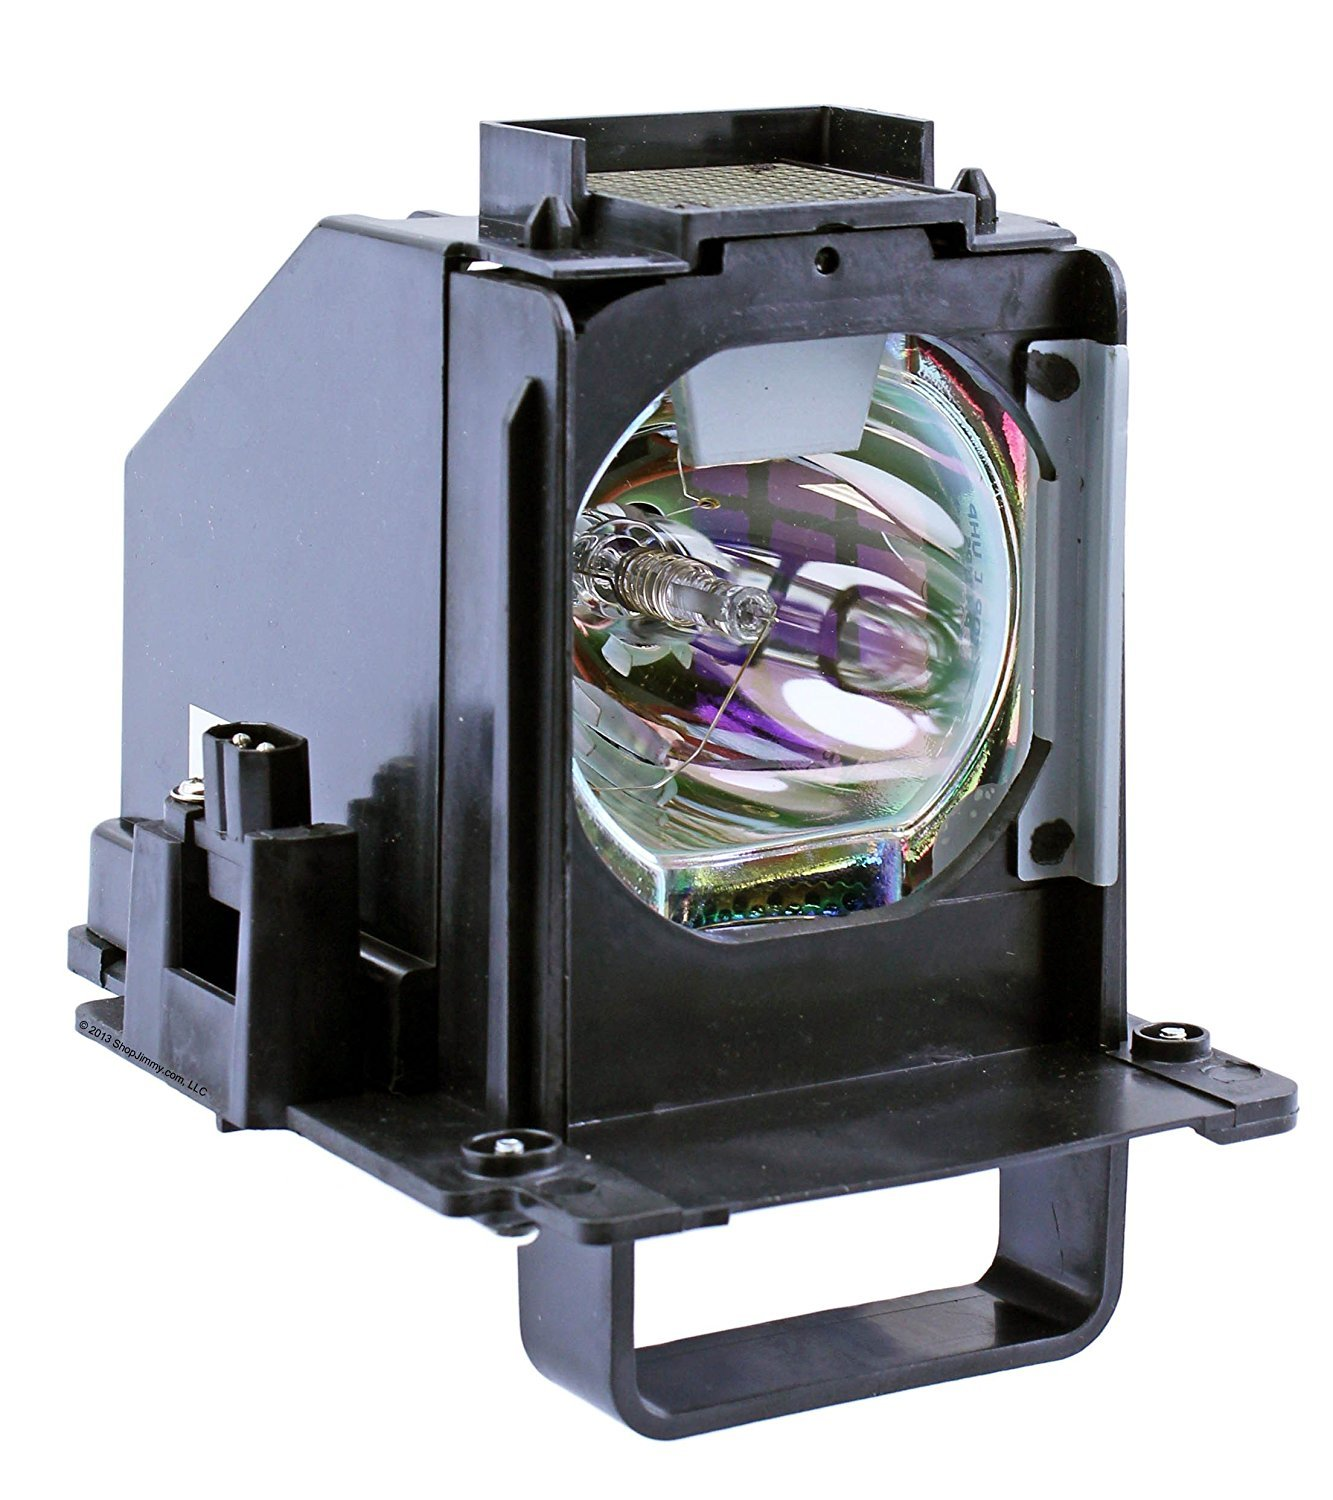 Ahlight Replacement Lamp with Housing for Mitsubishi WD-60C10,WD-60638, WD-60638CA, WD-60738 (915B441001) by BORYLI